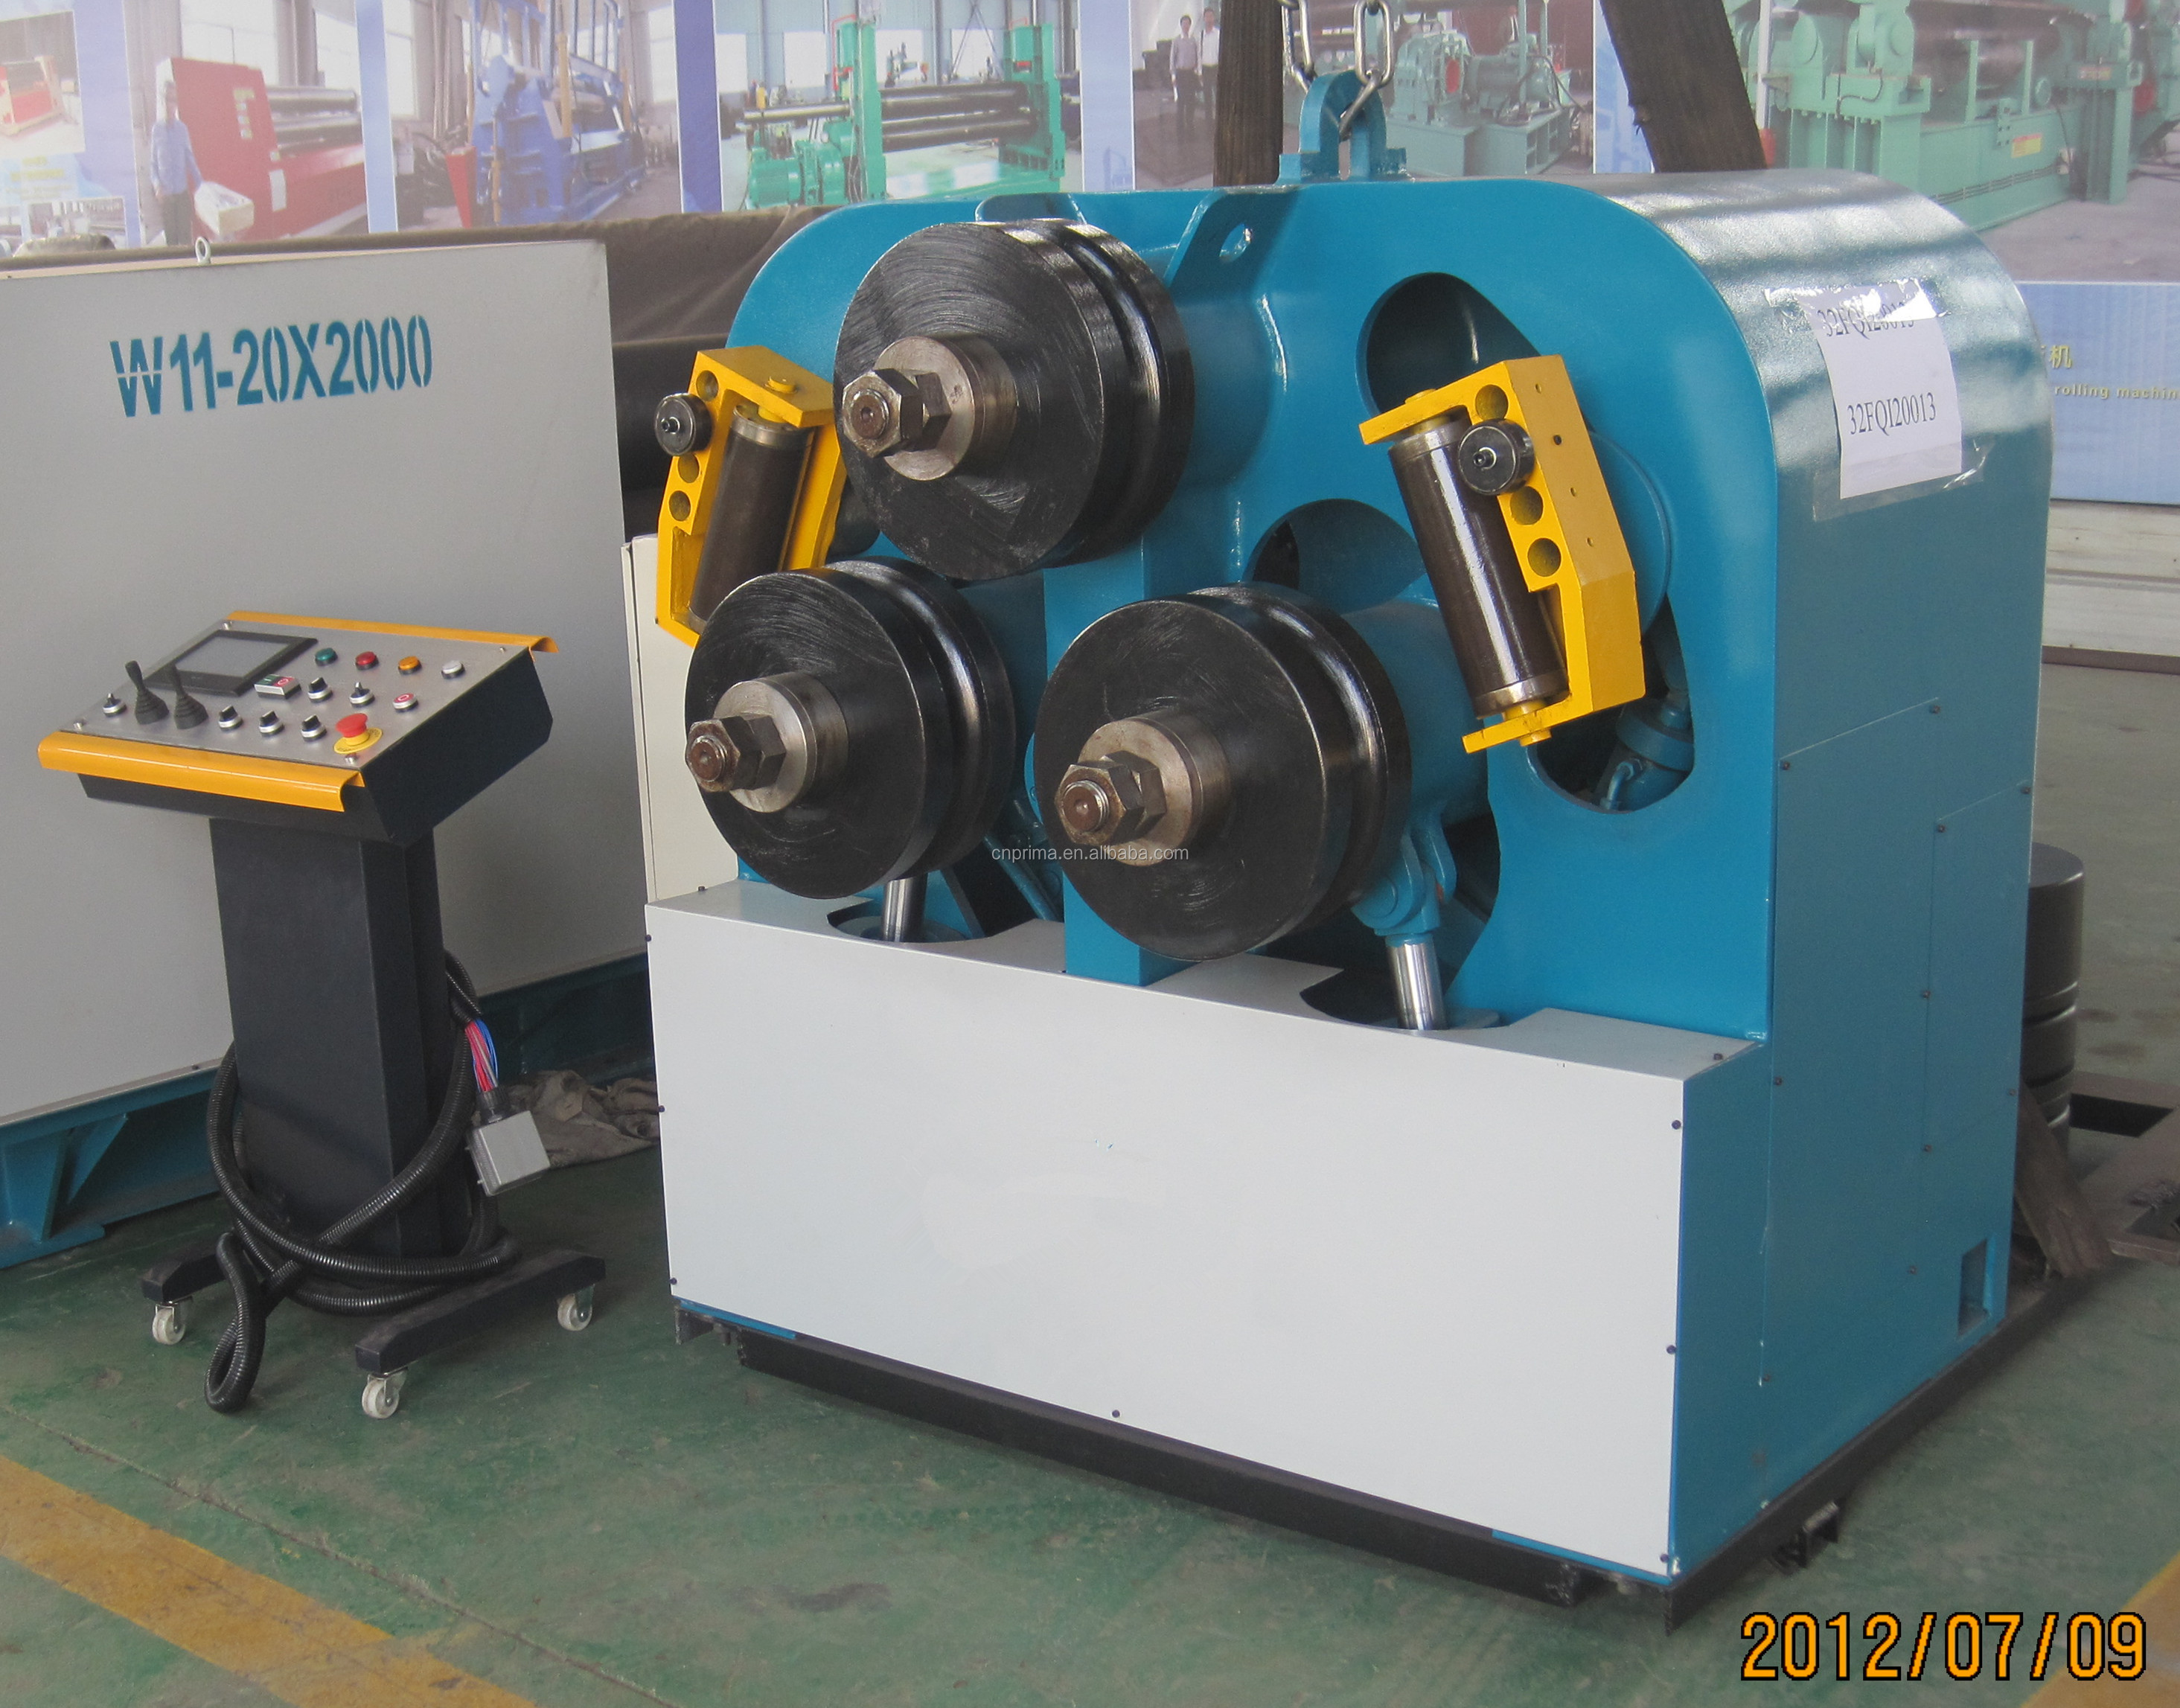 Solid Square/Round Steel Bar Profile Bender Hydraulic 3 Roll Pipe Bending Machine